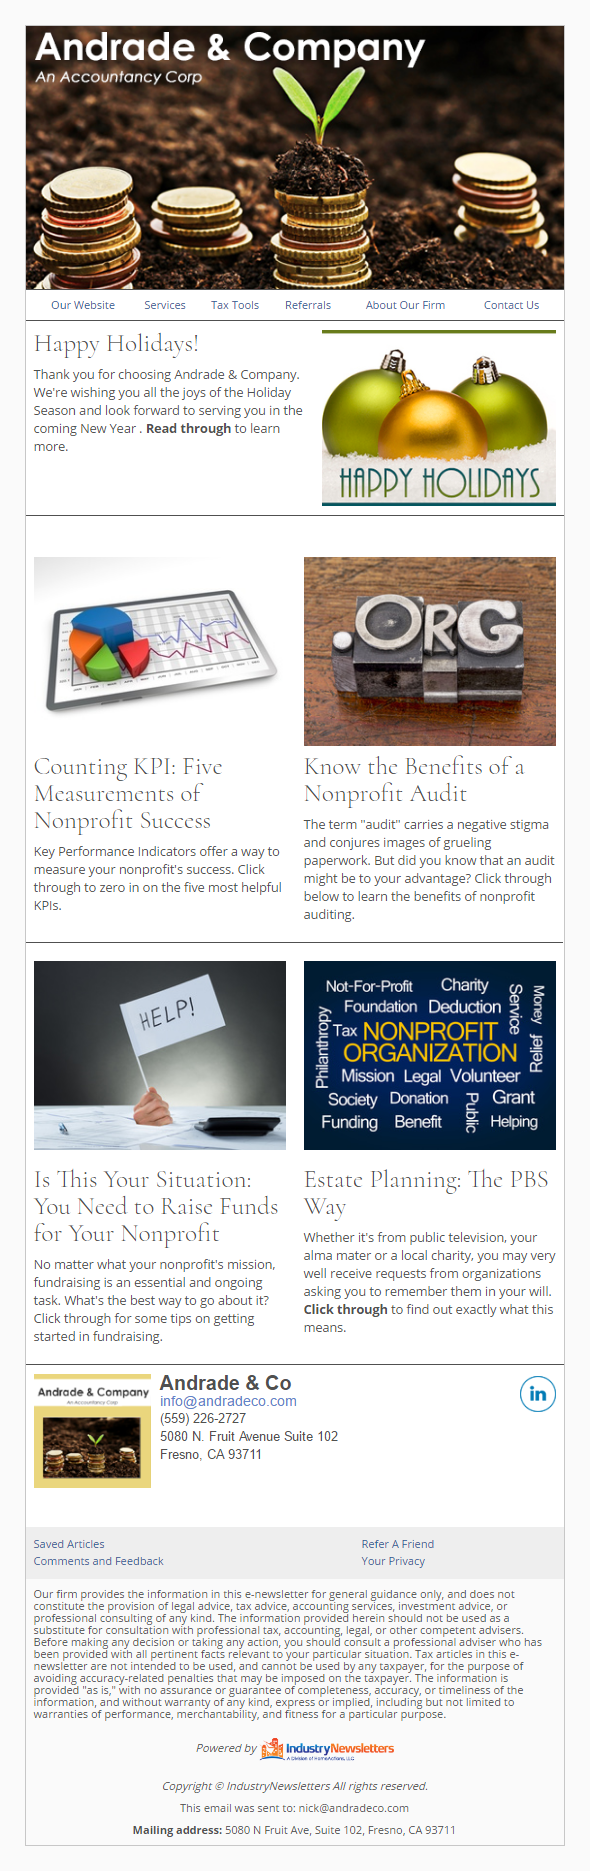 Andrade & Company - IndustryNewsletters Sample Email Newsletter